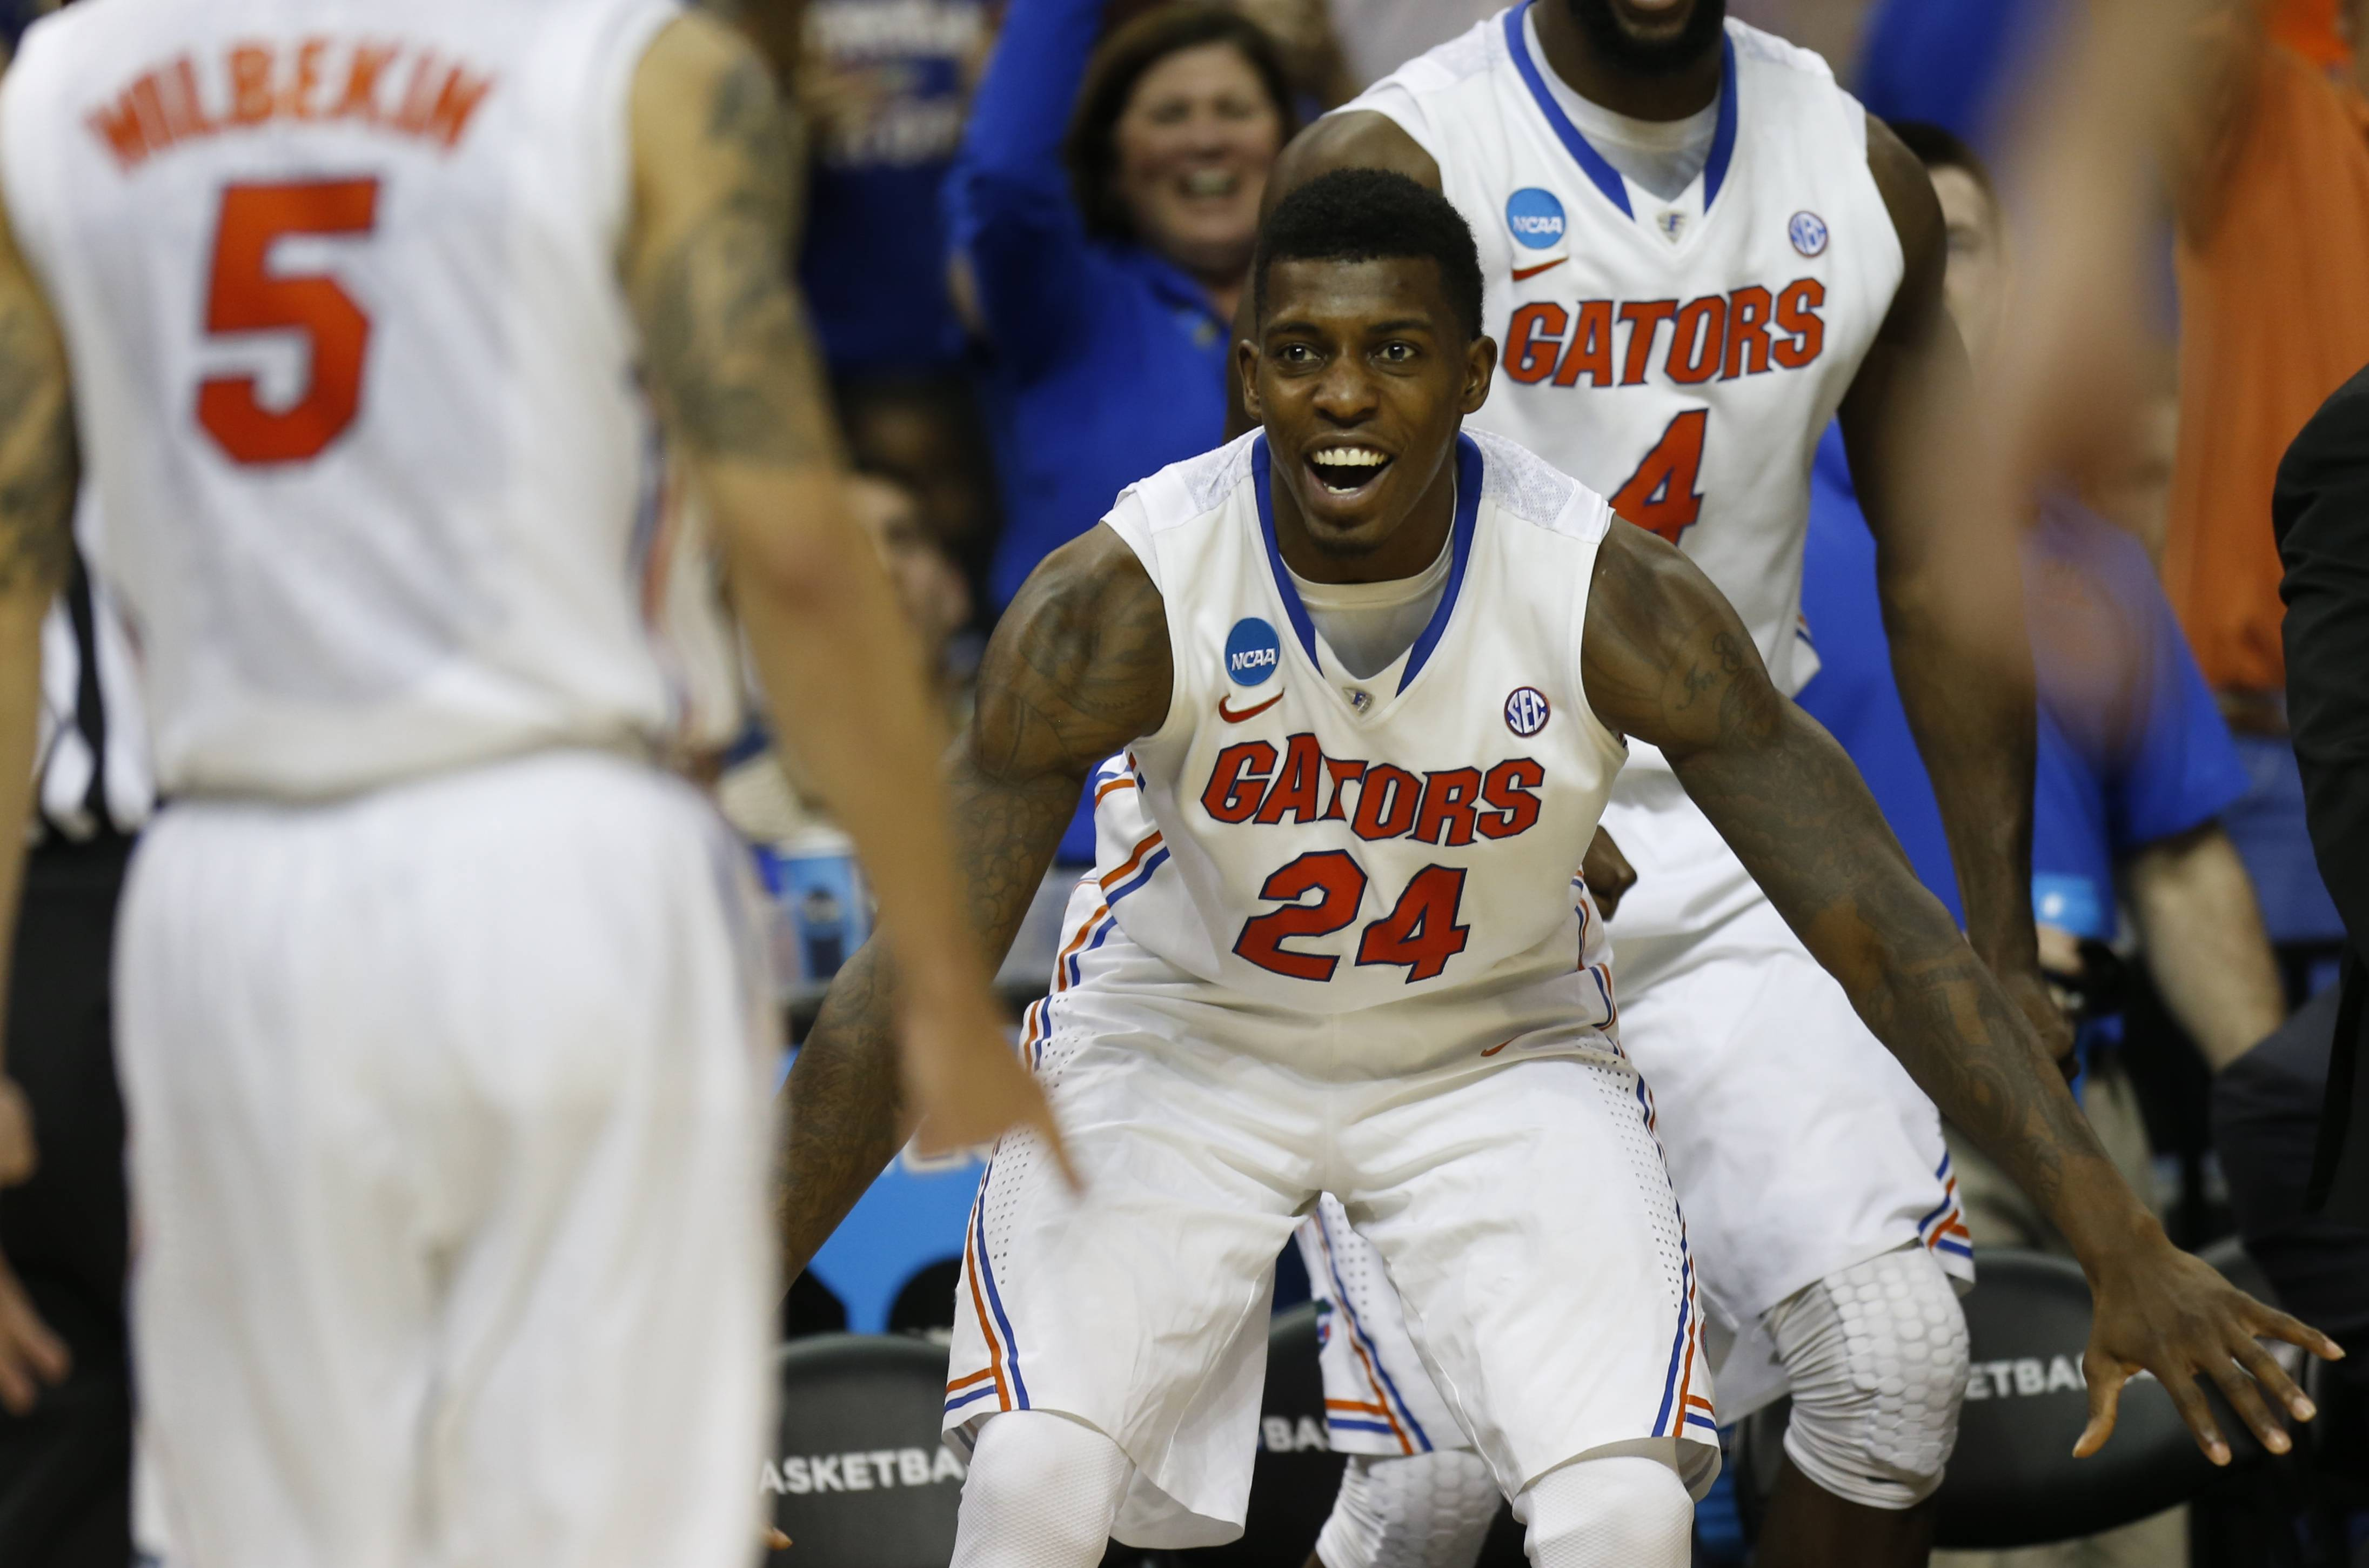 Florida forward Casey Prather (24) celebrates a 3-point shot against UCLA during the second half in a regional semifinal game at the NCAA college basketball tournament, Thursday, March 27, 2014, in Memphis, Tenn. Florida won 79-68.